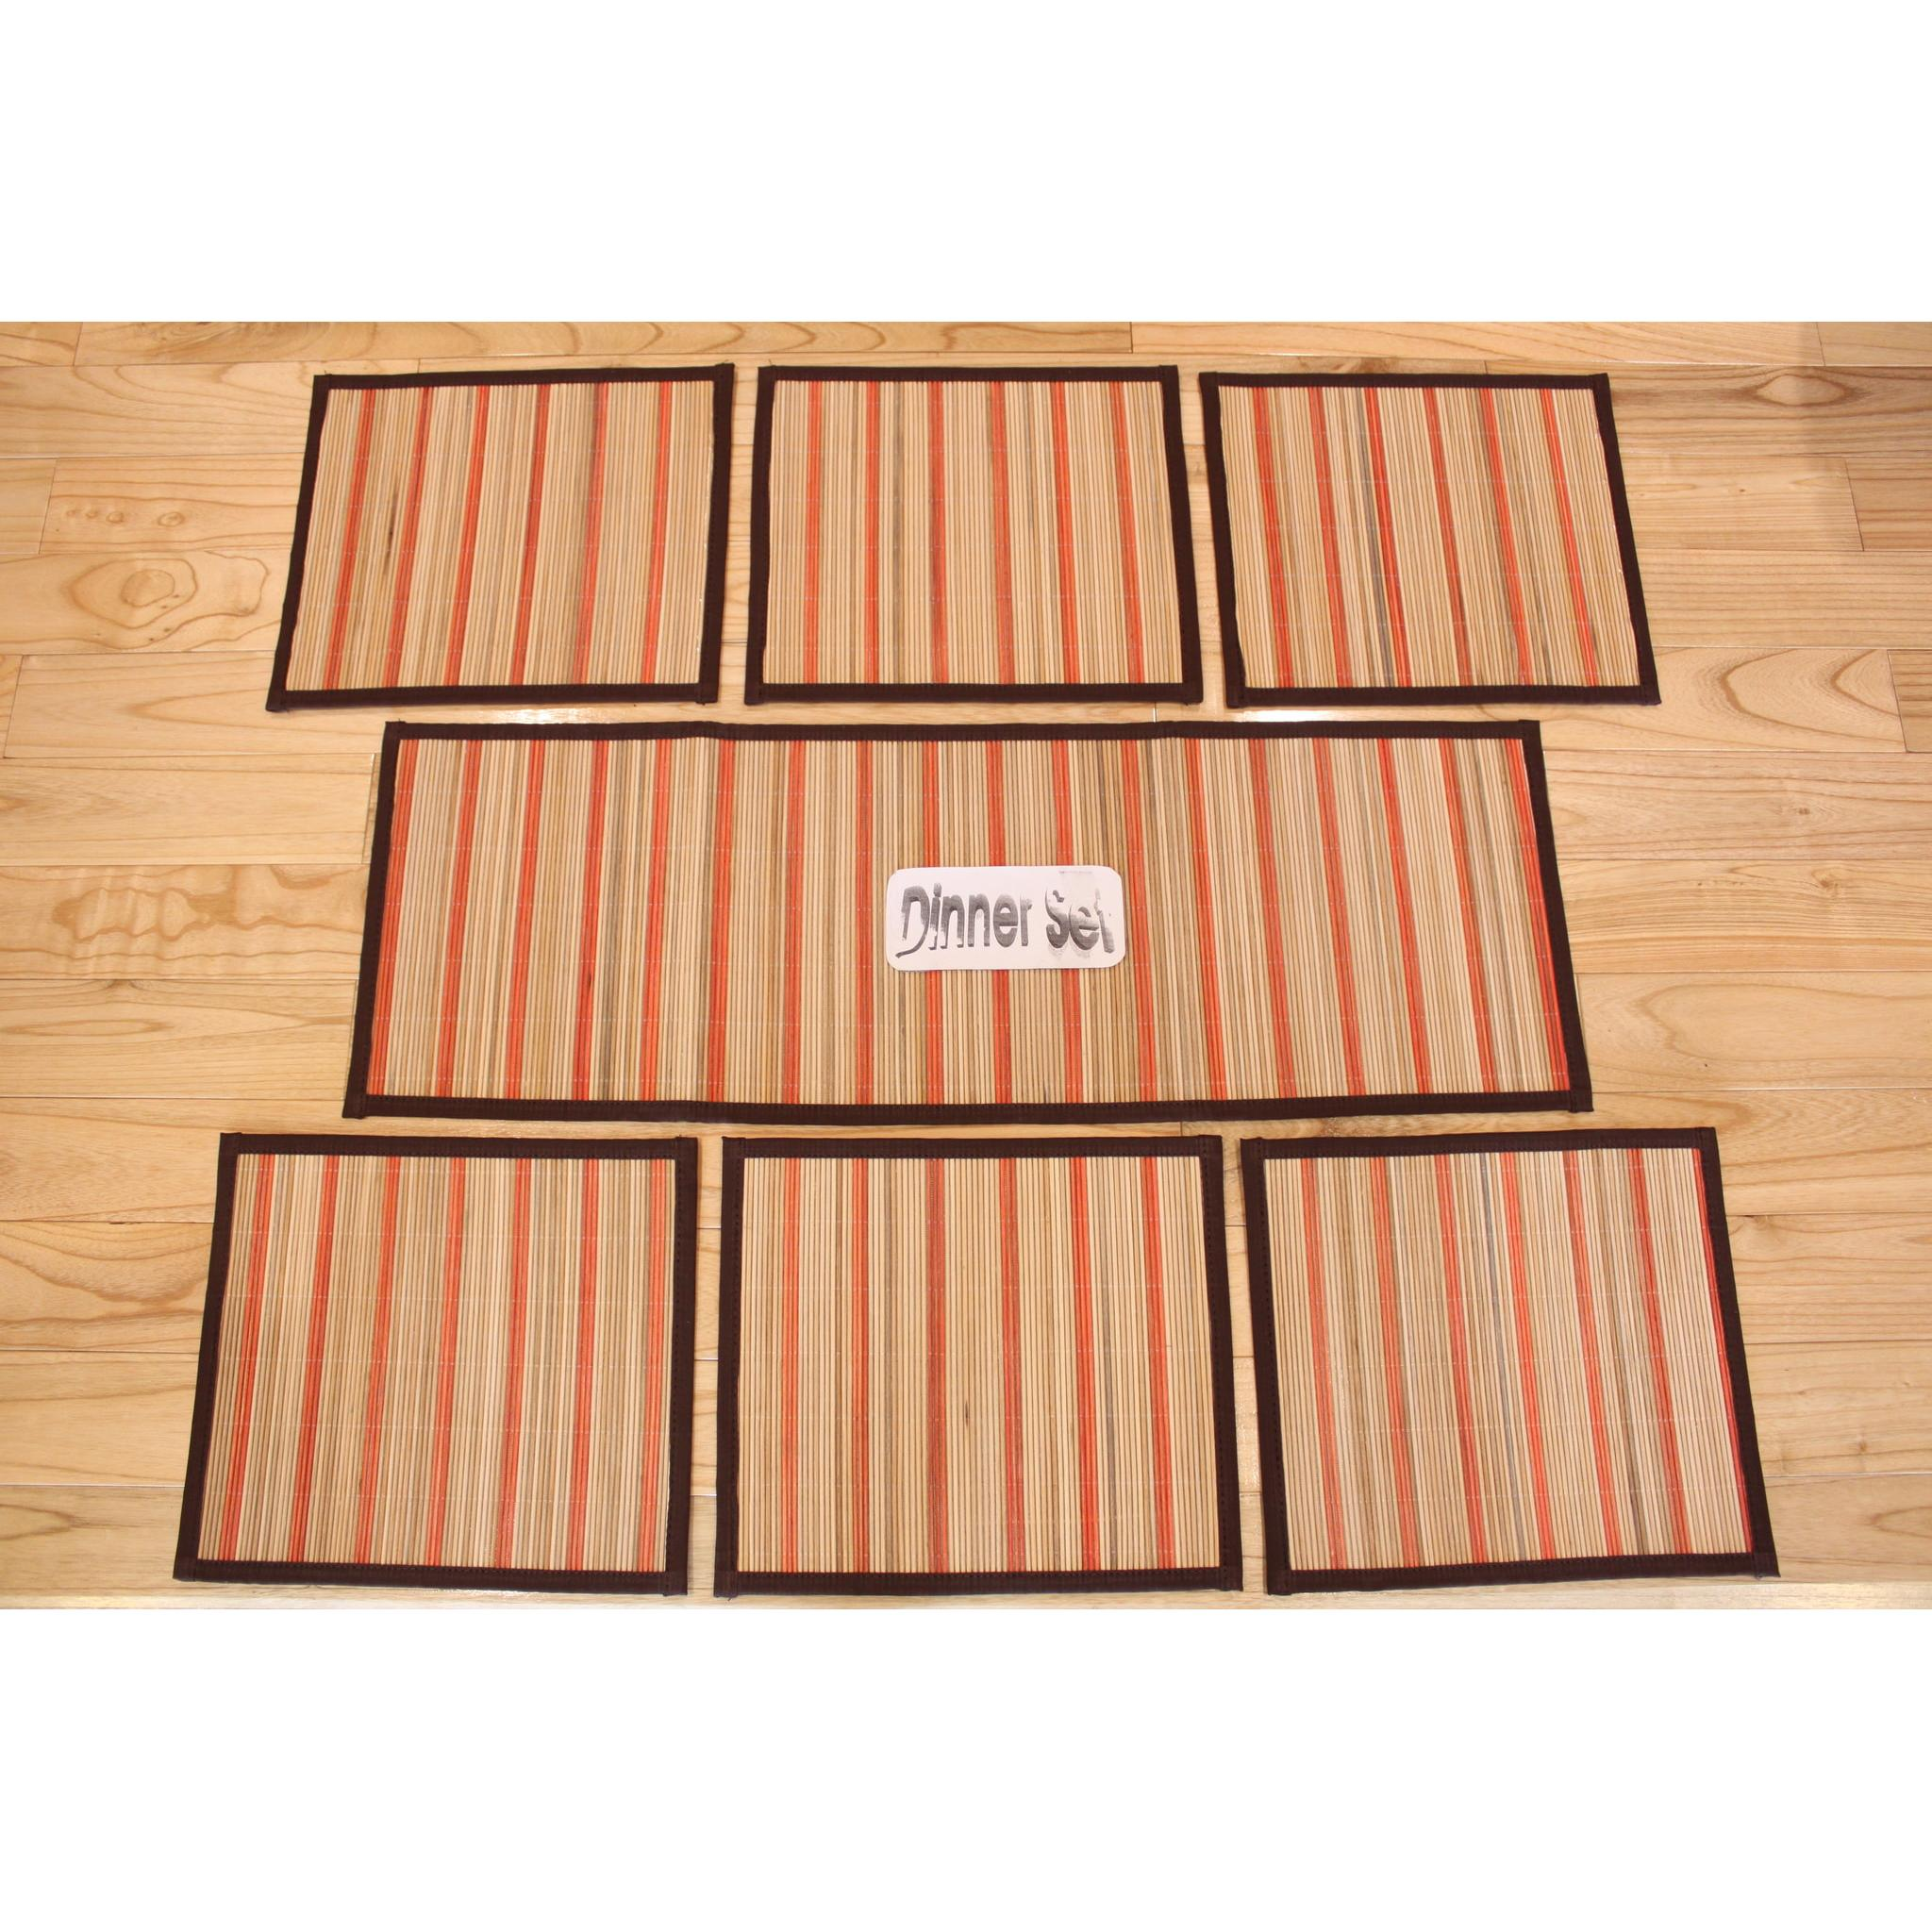 Kitchen Set Warna Orange: Set Taplak Piring Core Rotan (warna Orange), Taplak Meja